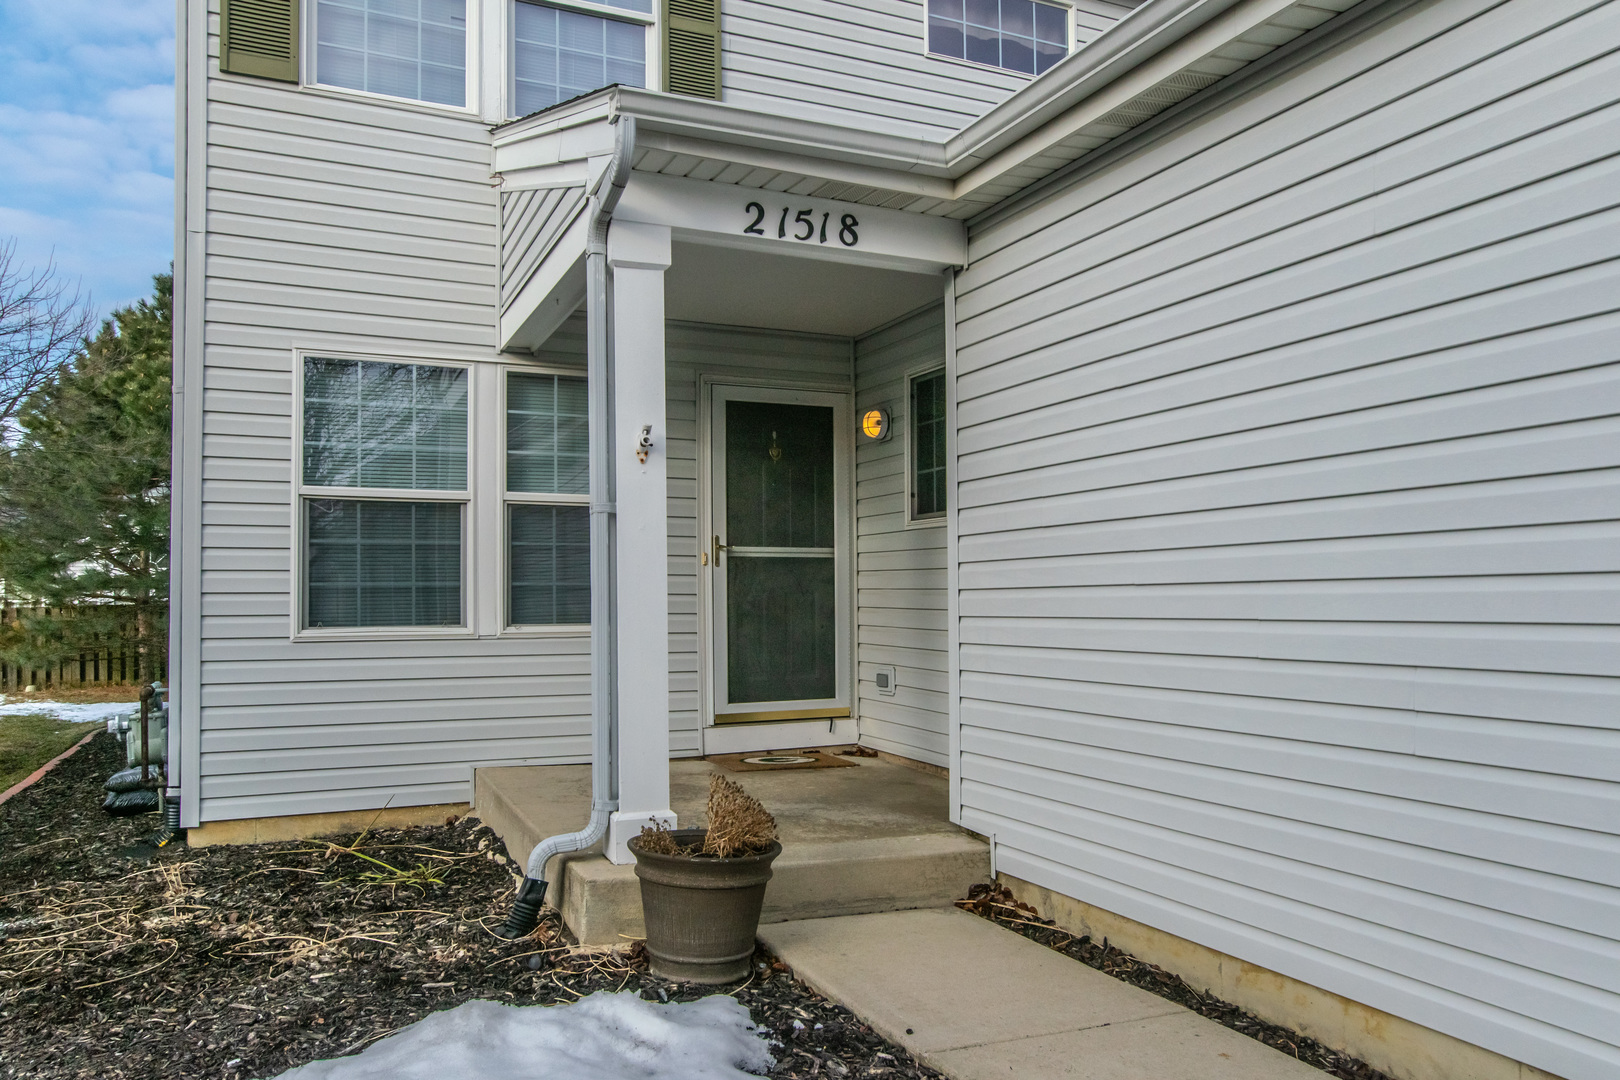 21518 Gray Wing, Crest Hill, Illinois, 60435